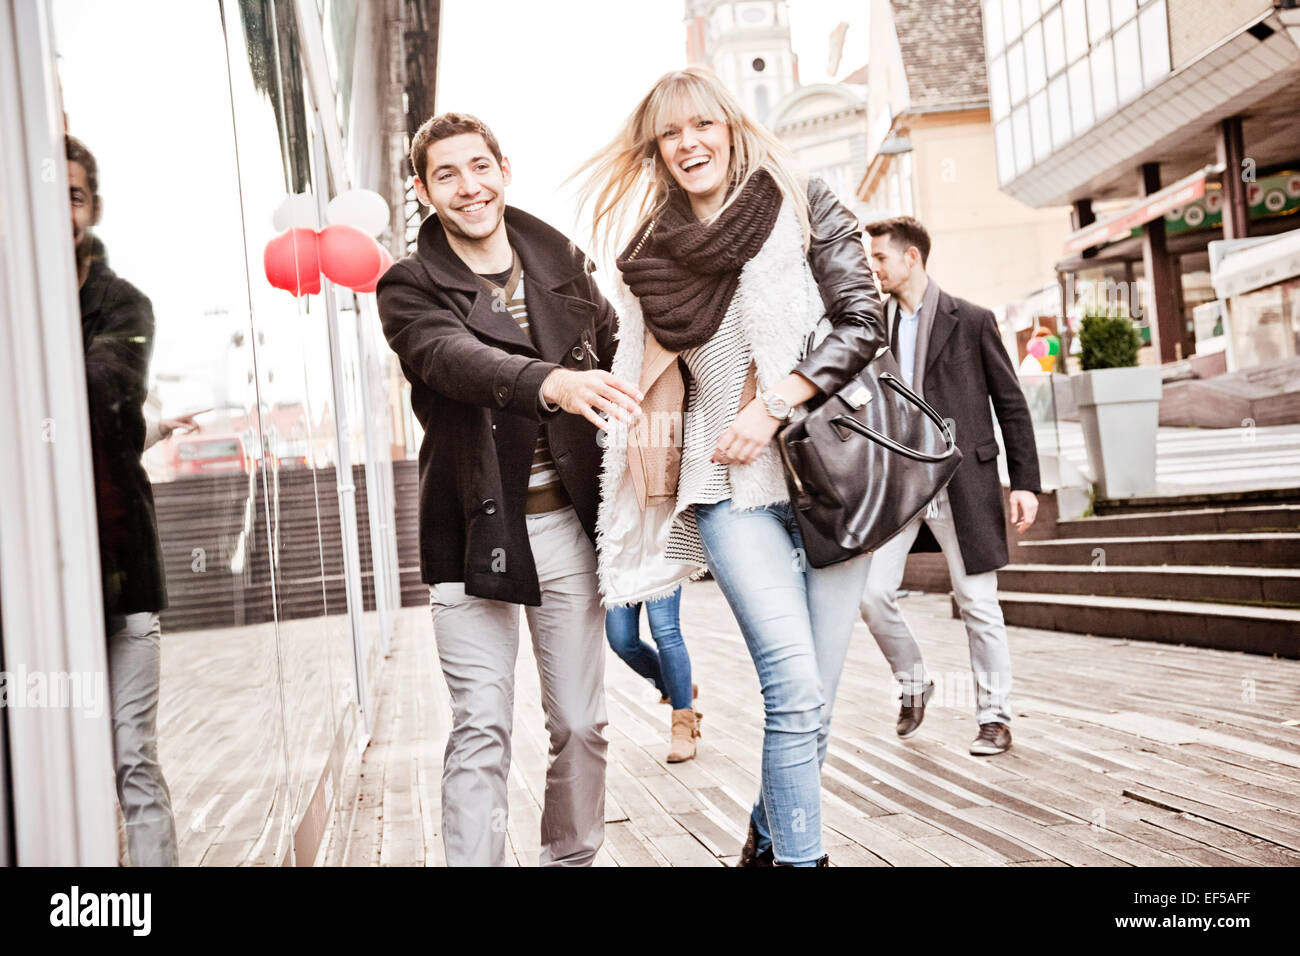 Group of friends having fun on shopping spree - Stock Image